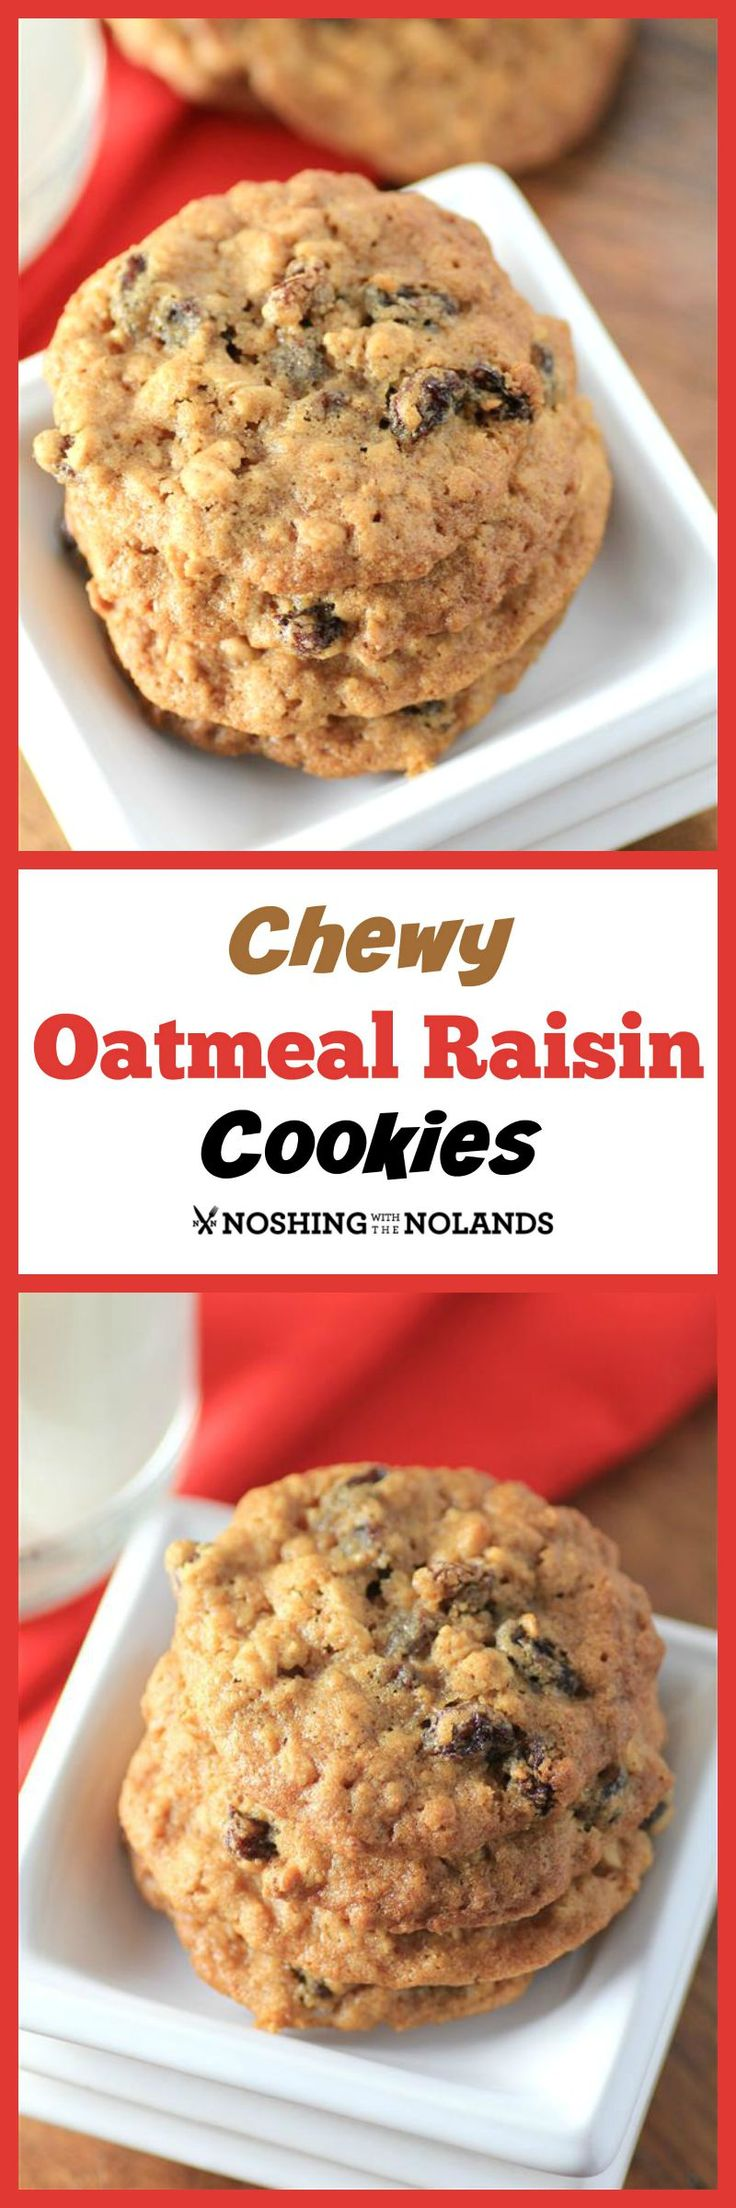 Perfect Chewy Oatmeal Raisin Cookies from Noshing with the Nolands - This is the best oatmeal raisin cookies recipe I've ever made and perfect for a picnic! CreativeCookieExchange